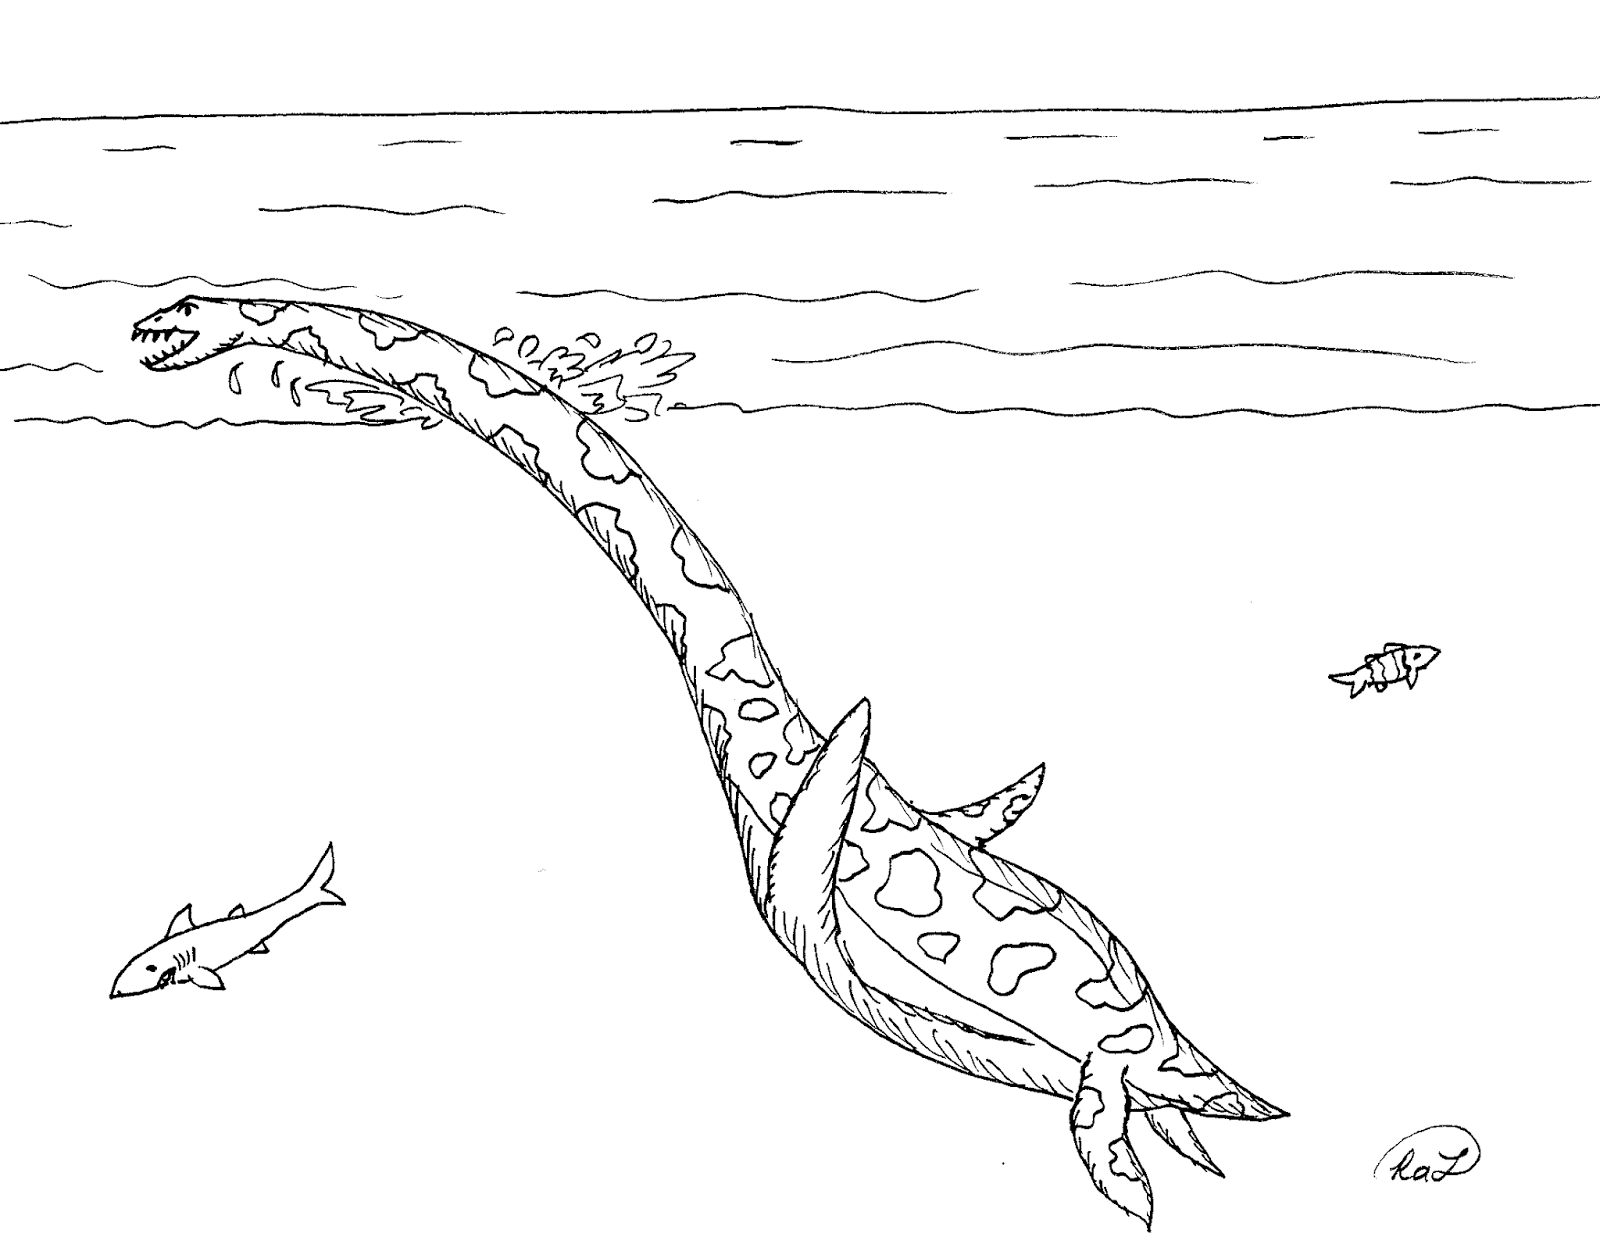 Robin's Great Coloring Pages: Marine Reptiles